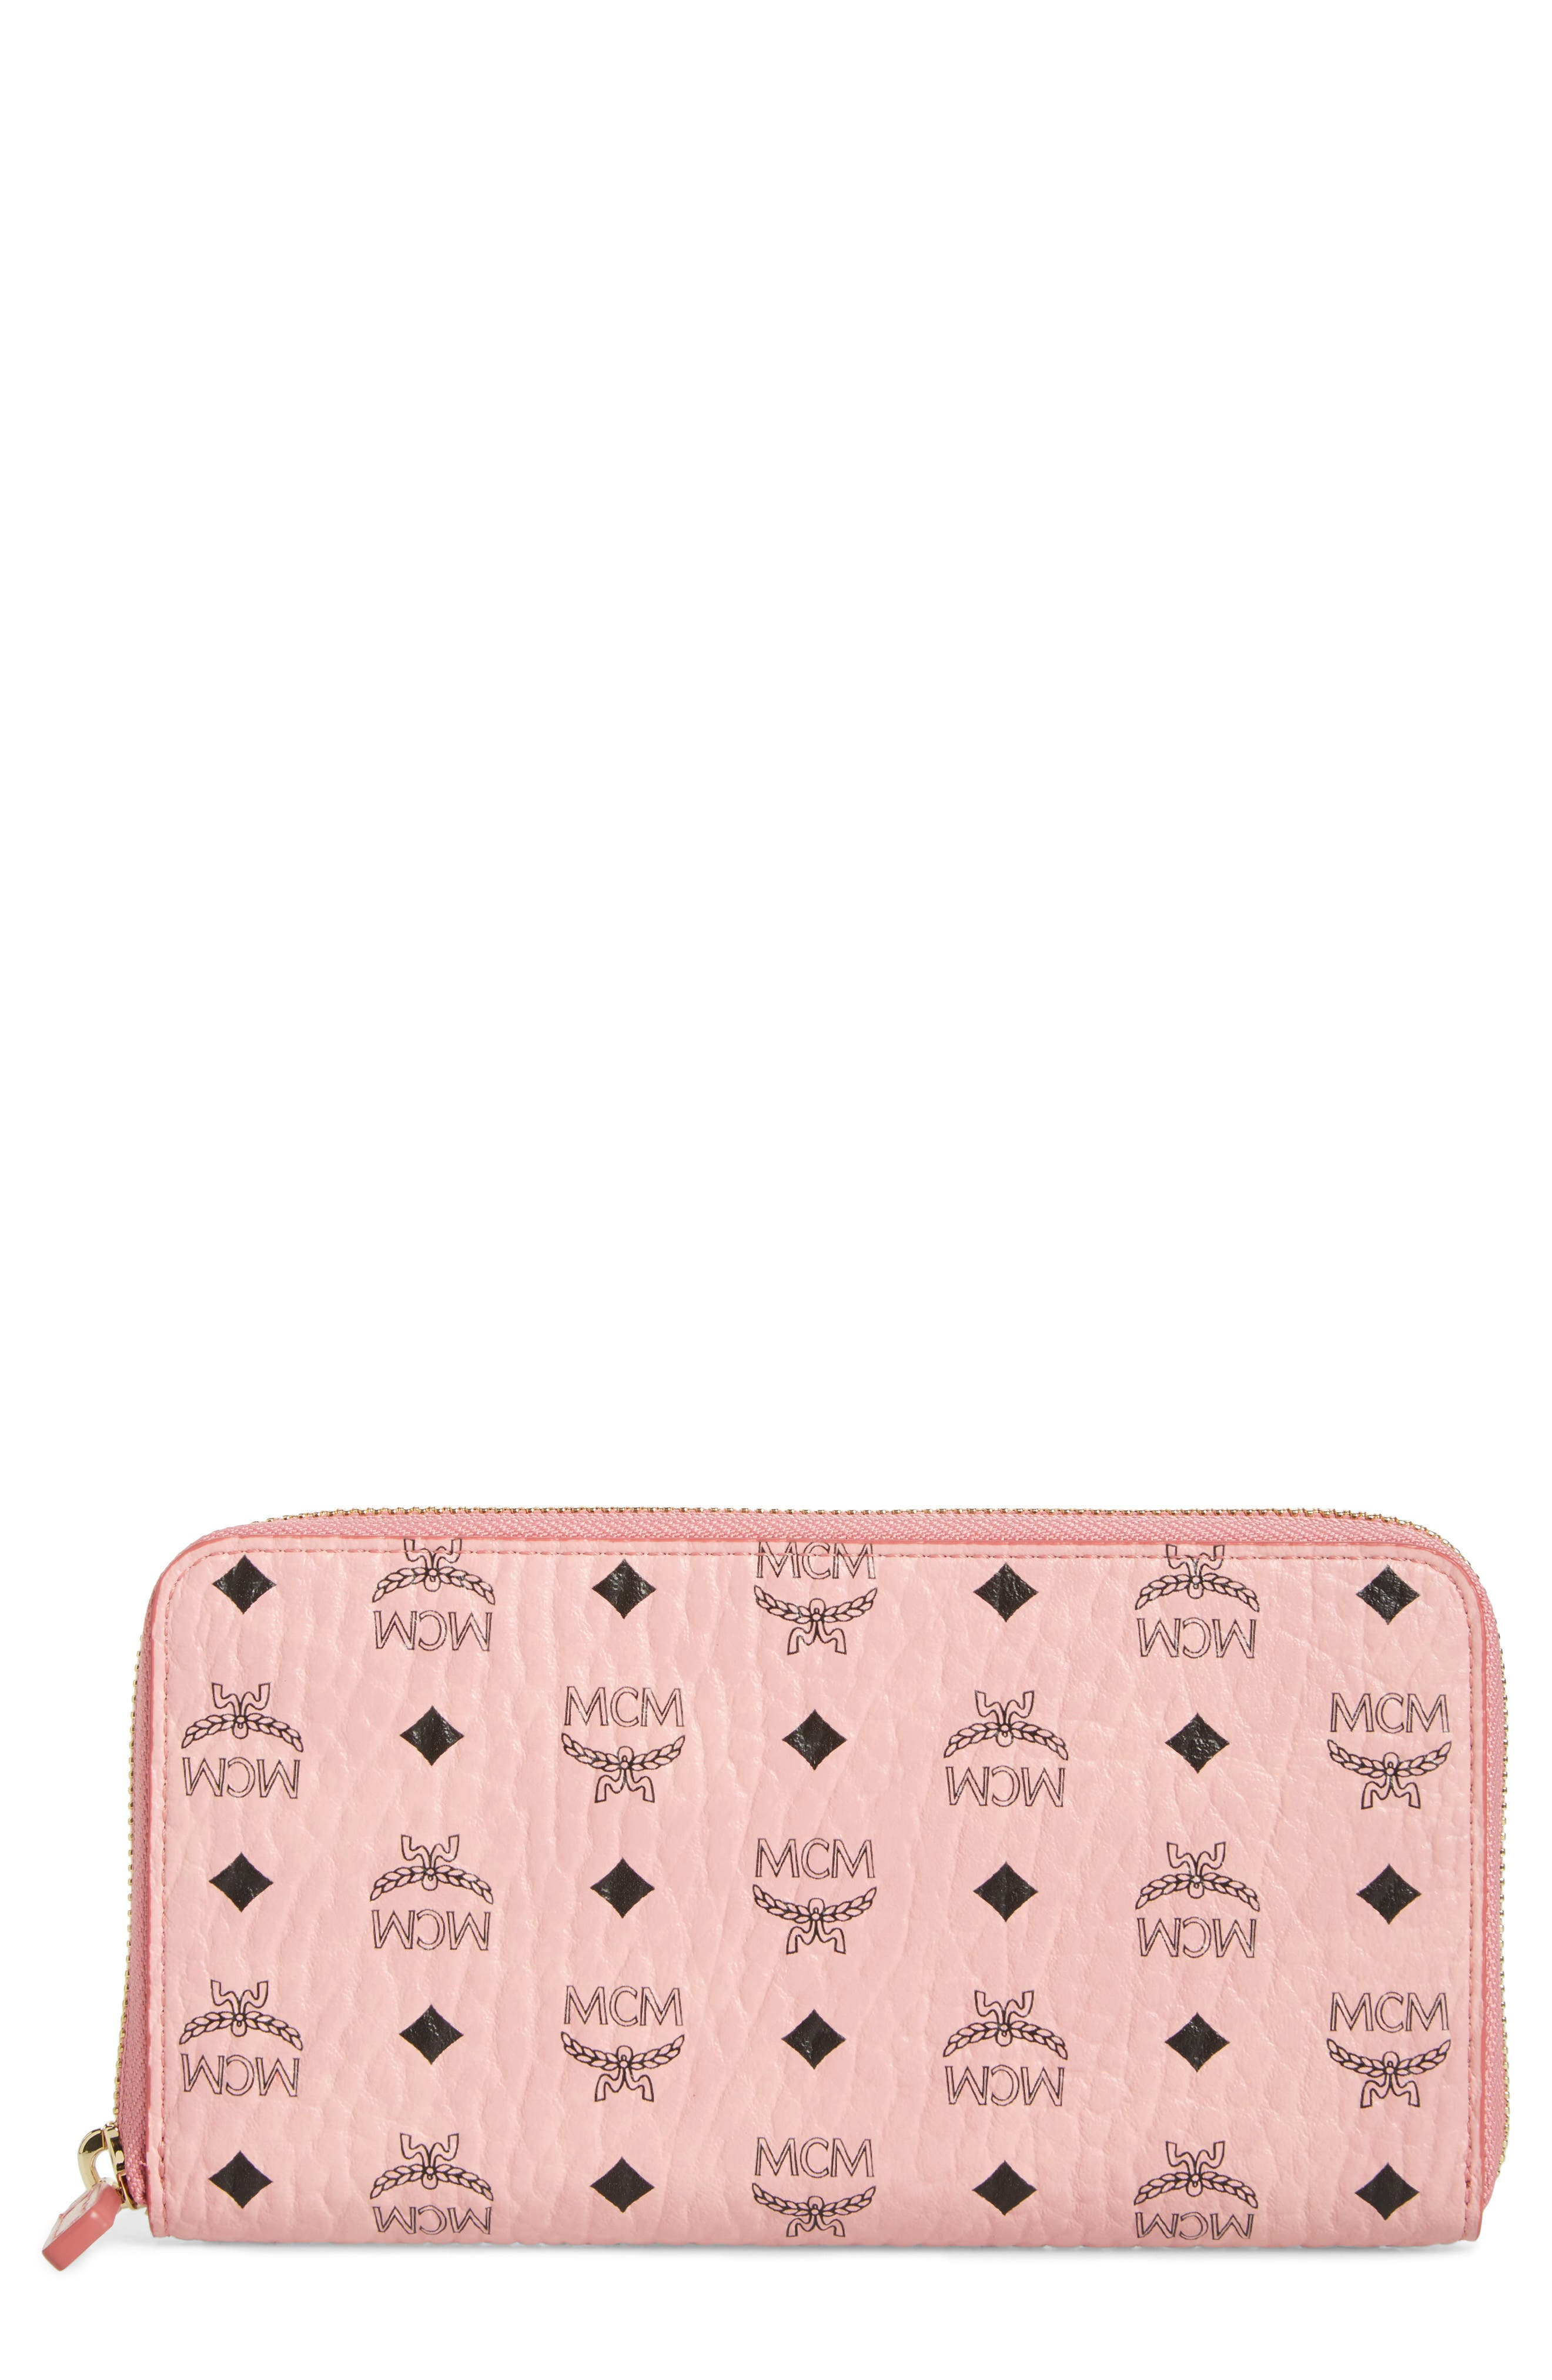 Visetos Coated Canvas Zip Wallet,                             Main thumbnail 1, color,                             Soft Pink